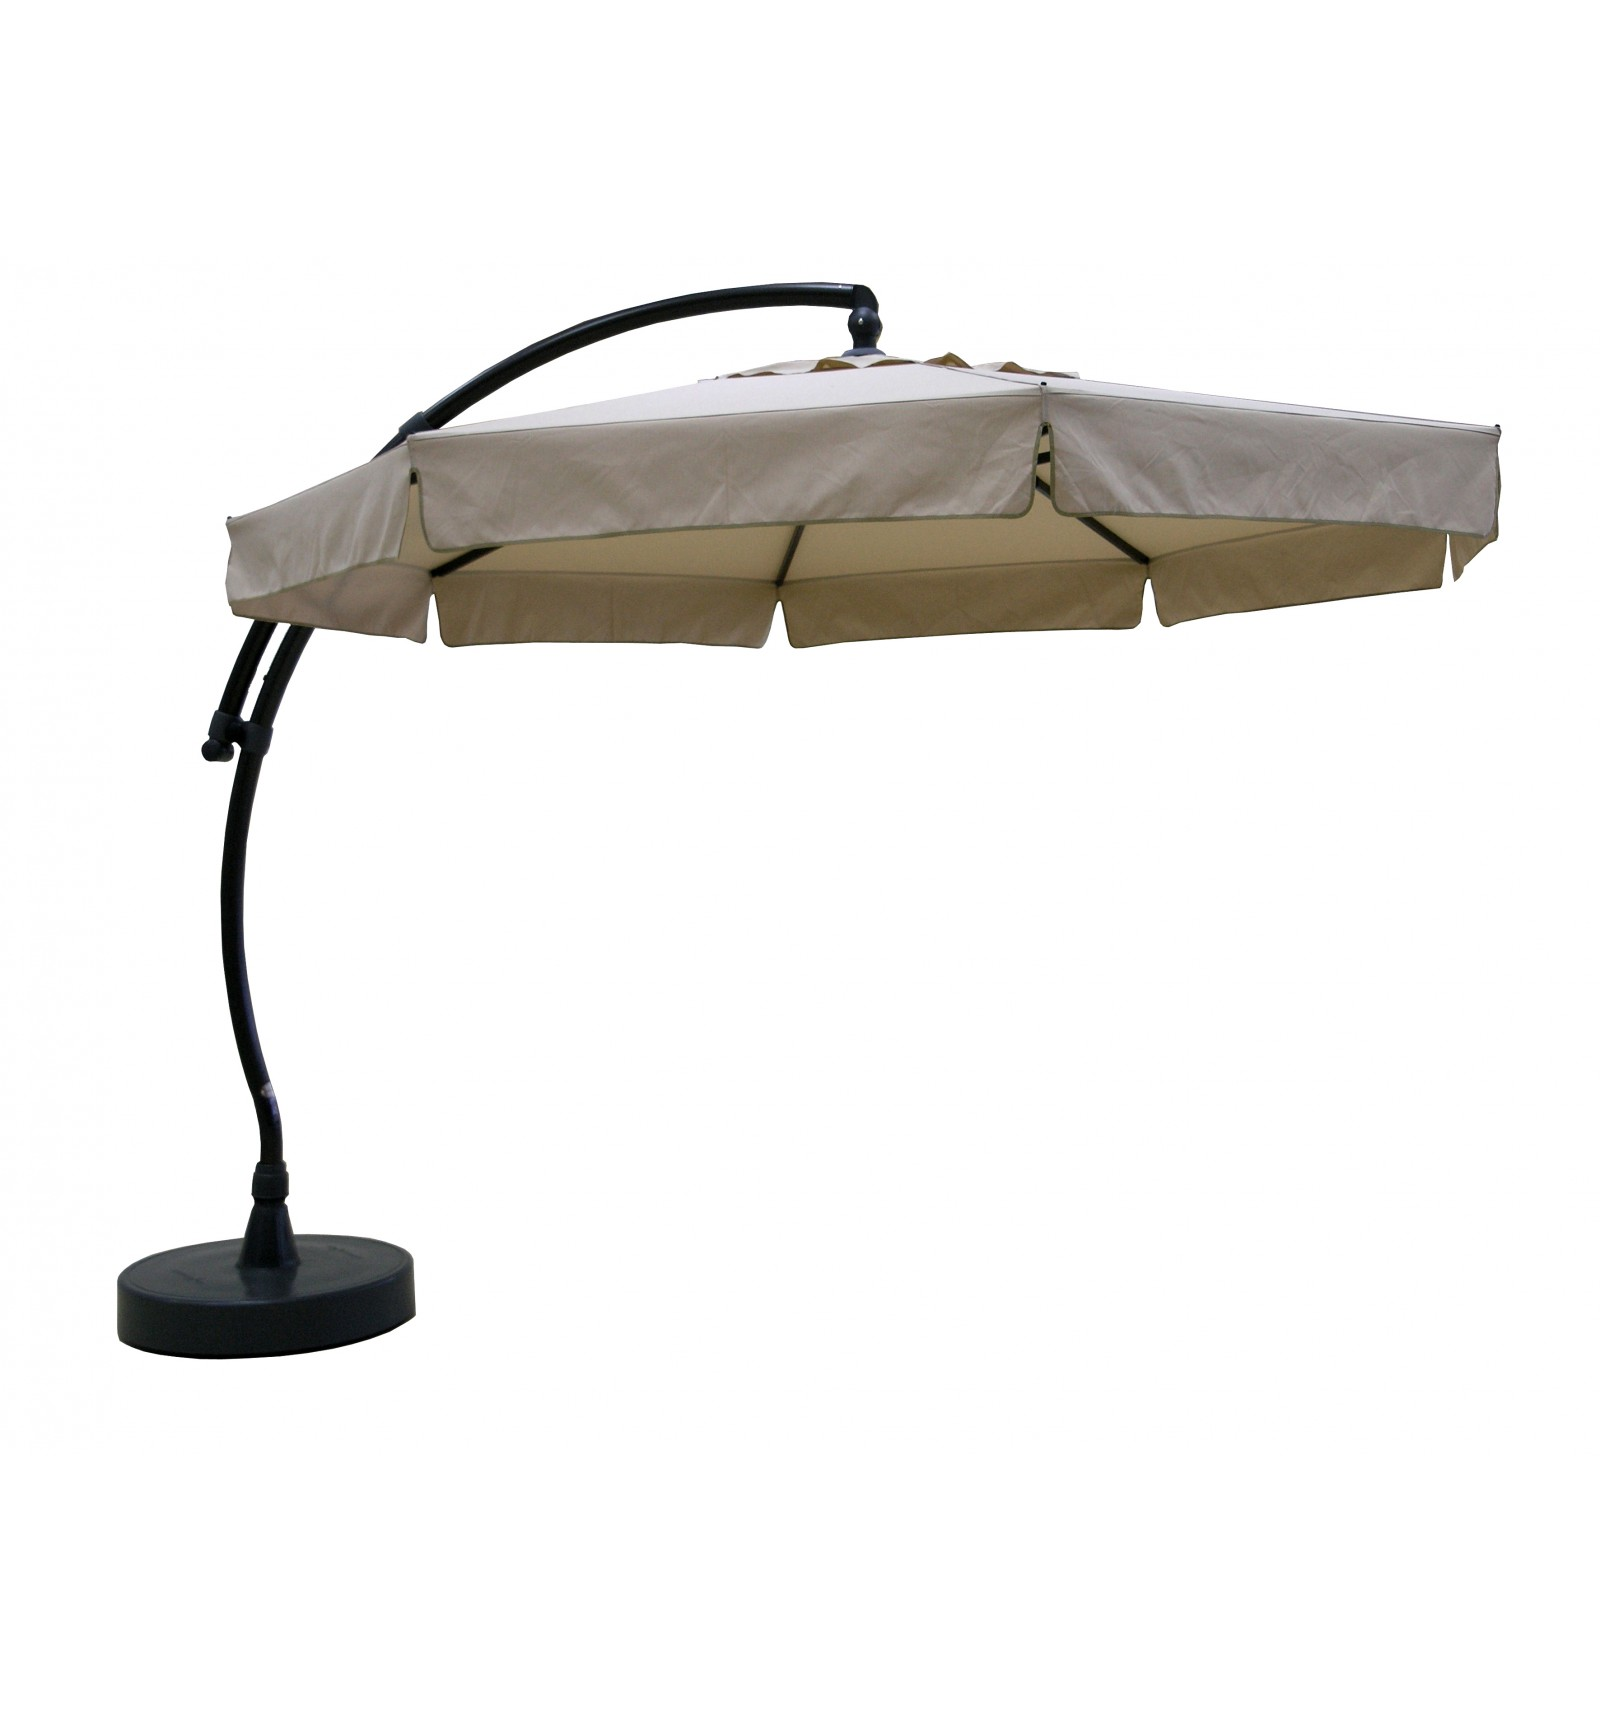 sun garden easy sun cantilever parasol classic with flaps olefin light taupe canvas. Black Bedroom Furniture Sets. Home Design Ideas